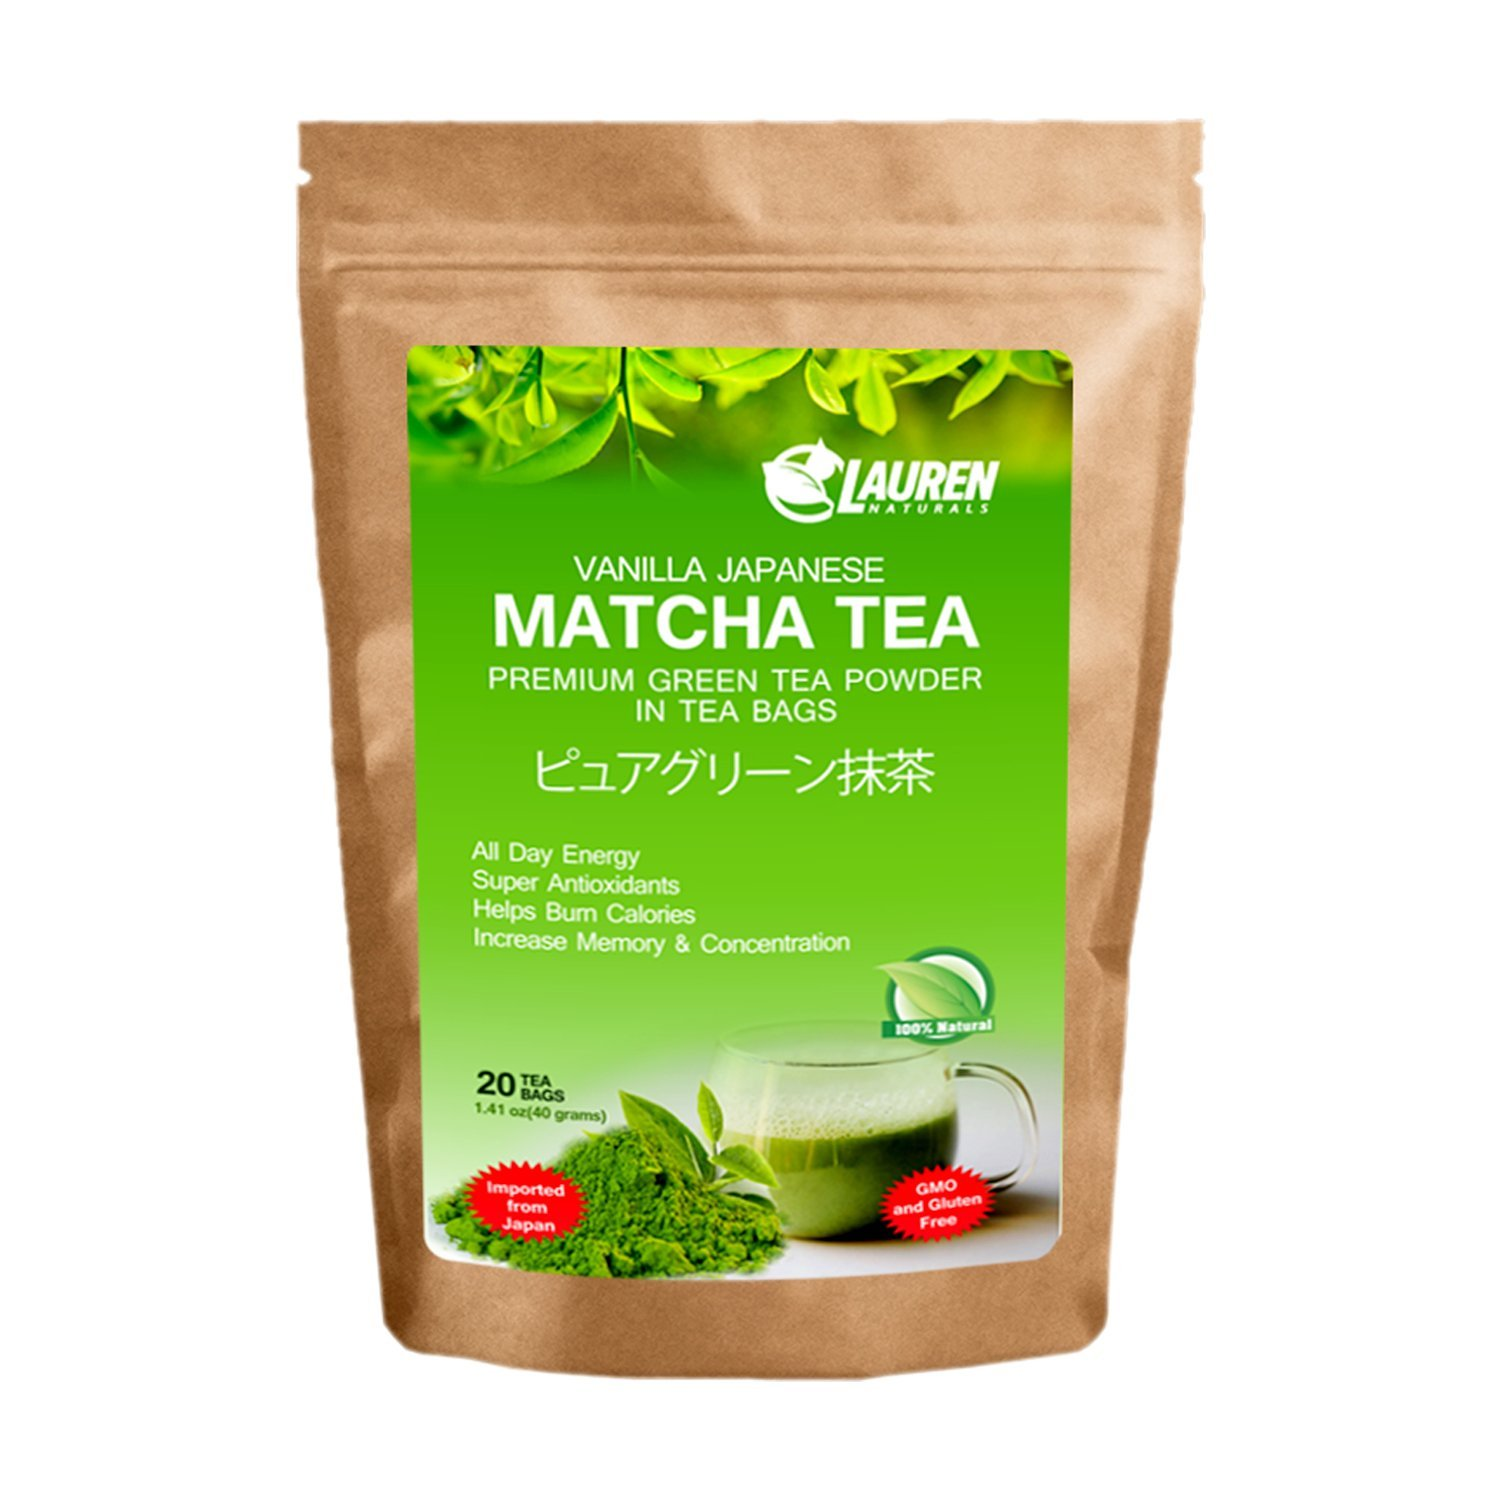 Vanilla Flavored Matcha Powder TEA BAGS: Imported Japanese Organic Matcha Powder in Tea Bags by Lauren Naturals: Great for - Risk Free Full Money Back Guarantee